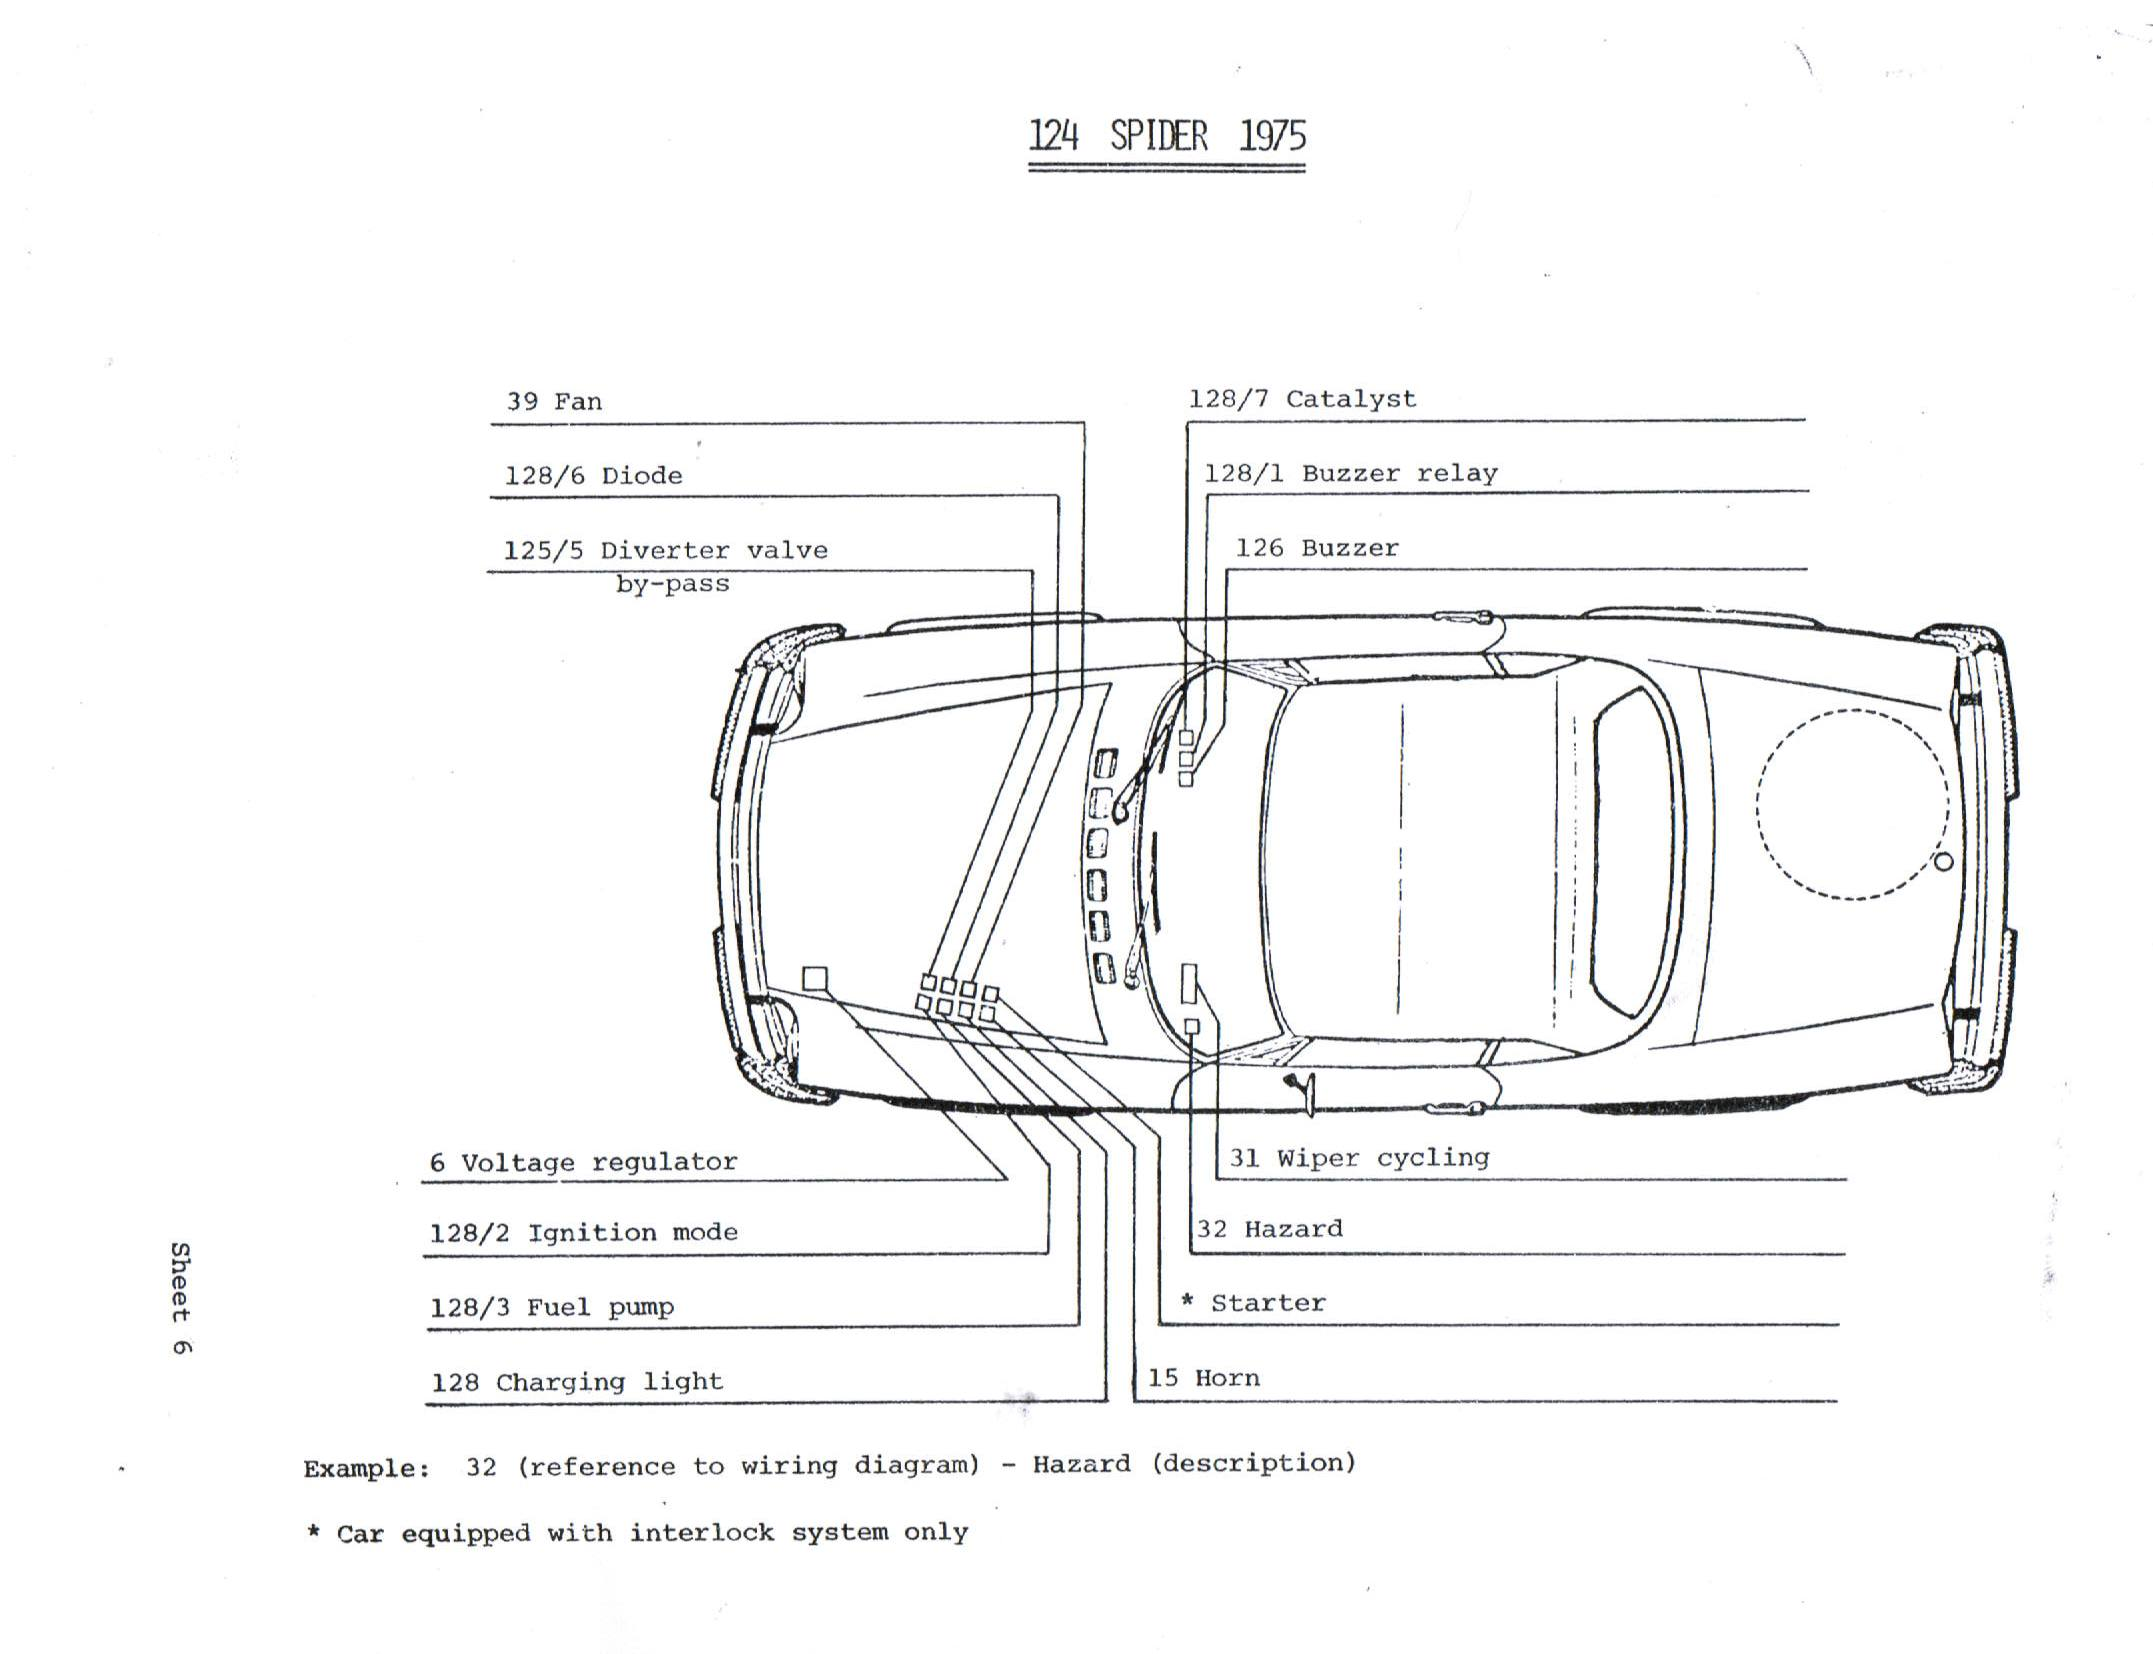 Fiat 131 Wiring Diagram 1975 124 Spider Index Of Wcm Personal 1979 Ignition